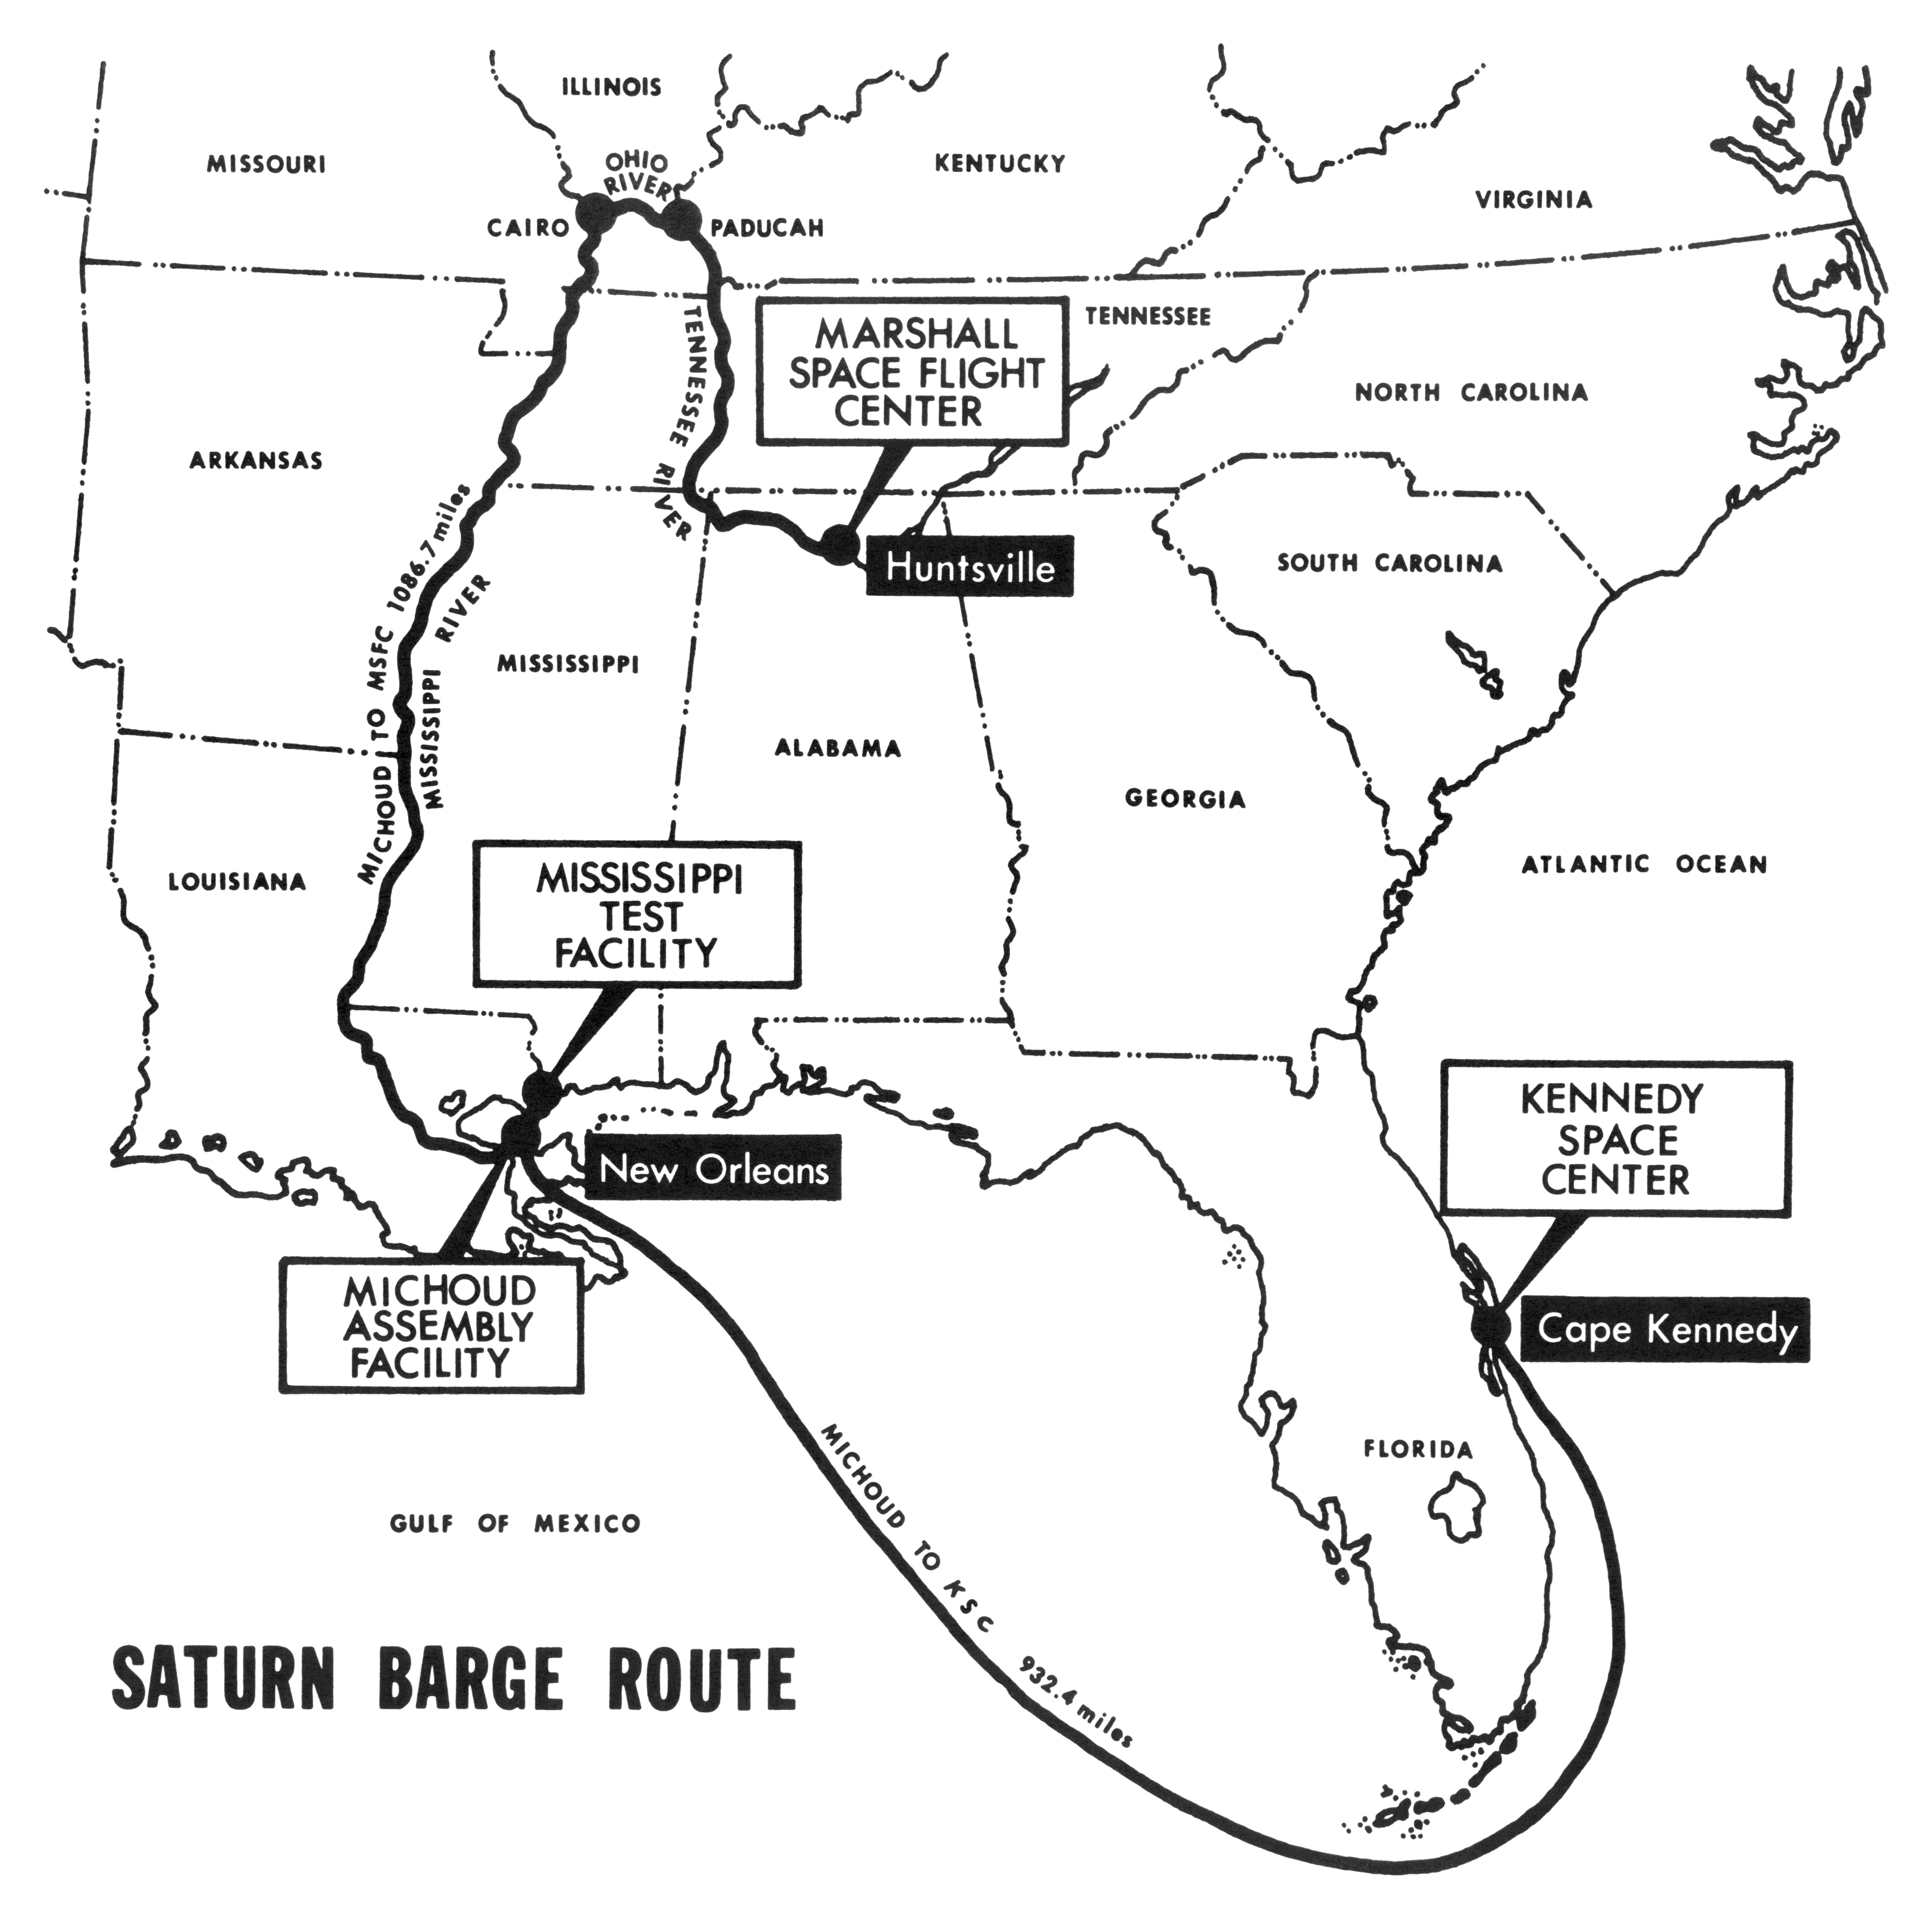 saturn barge routes - marshall space flight center msfc mississippi test facility mtf stennismichoud assembly facility maf kennedy space